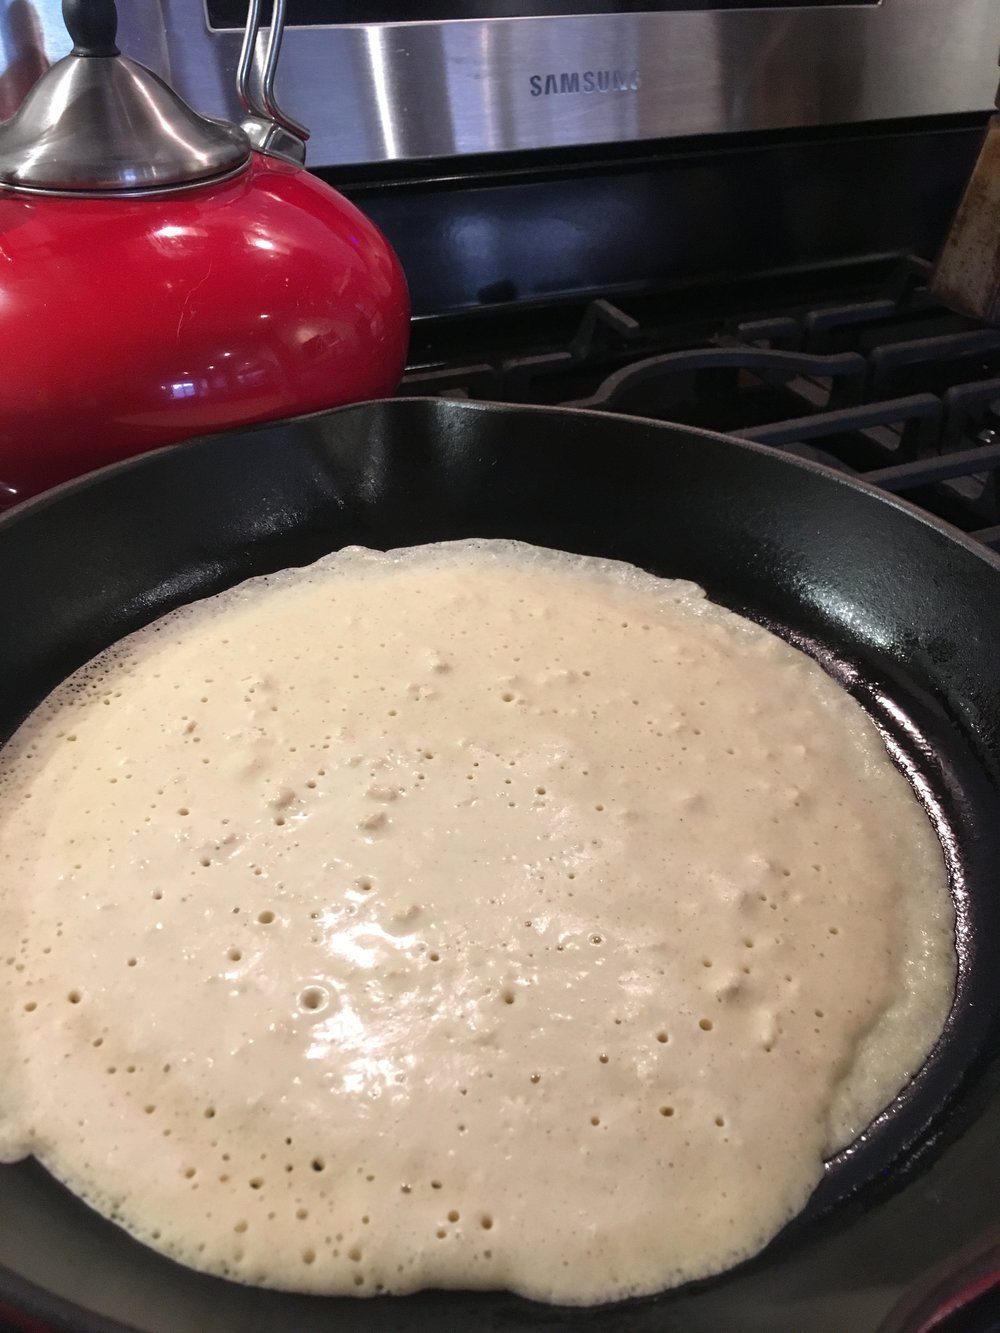 Swirl the batter all the way around the pan. When air pockets form, it's ready to flip.